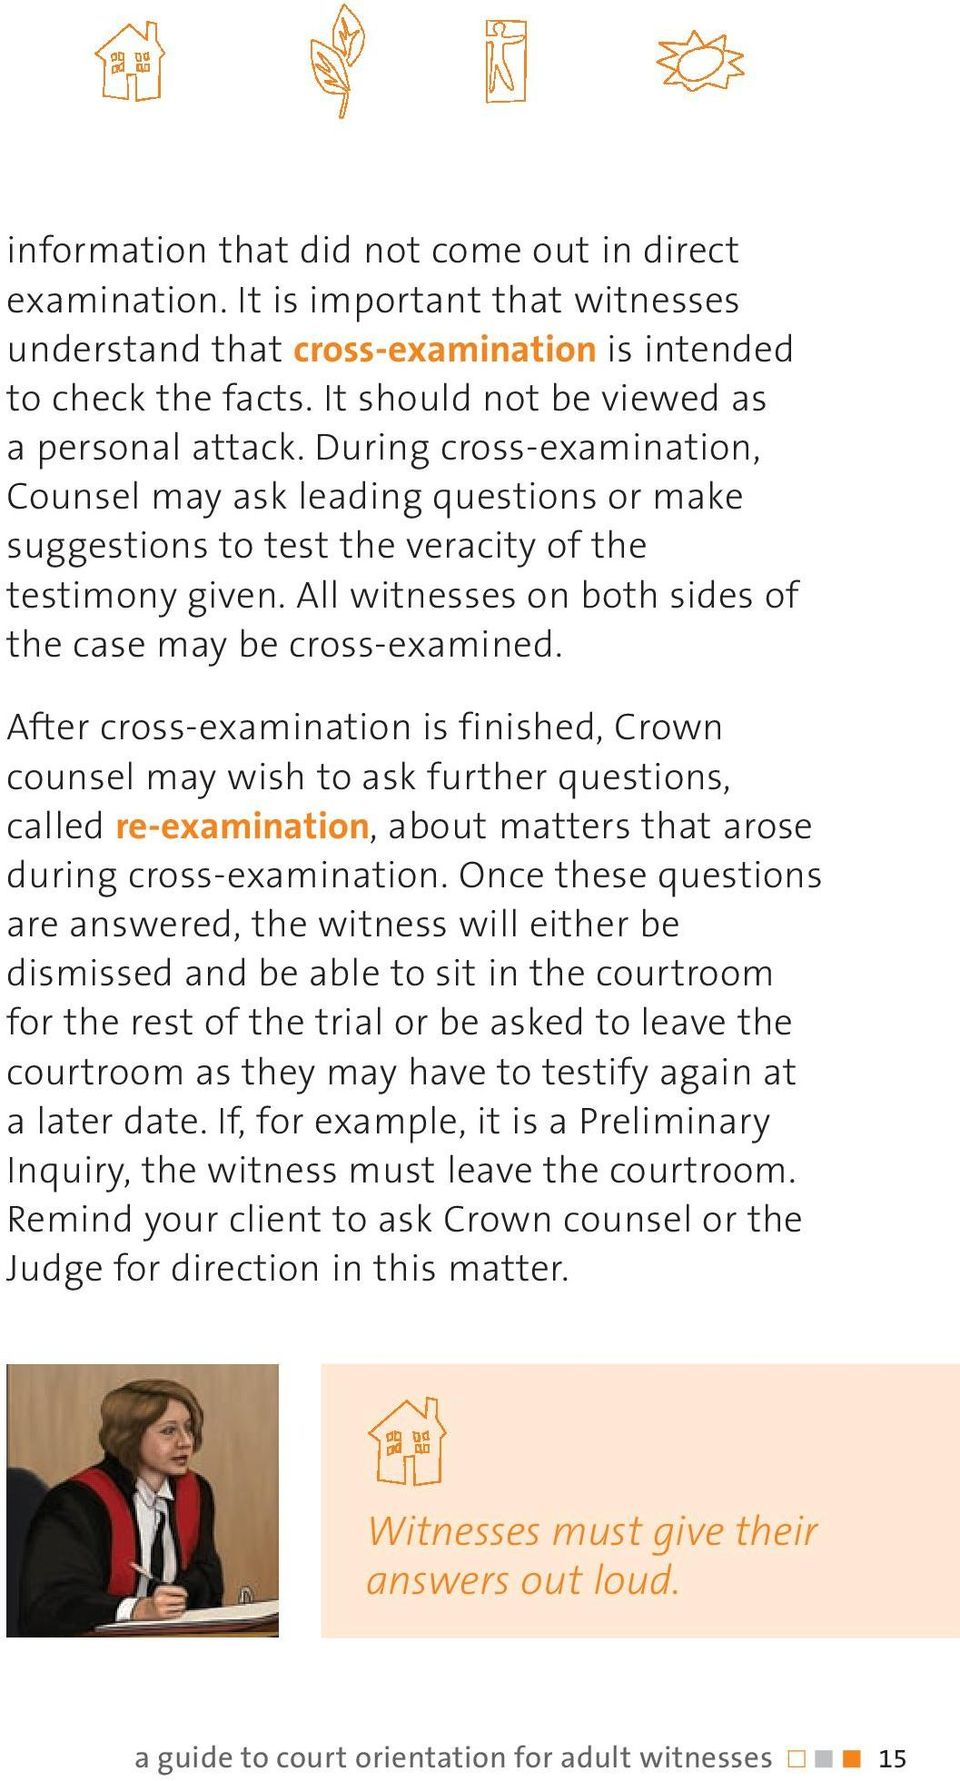 After cross-examination is finished, Crown counsel may wish to ask further questions, called re-examination, about matters that arose during cross-examination.